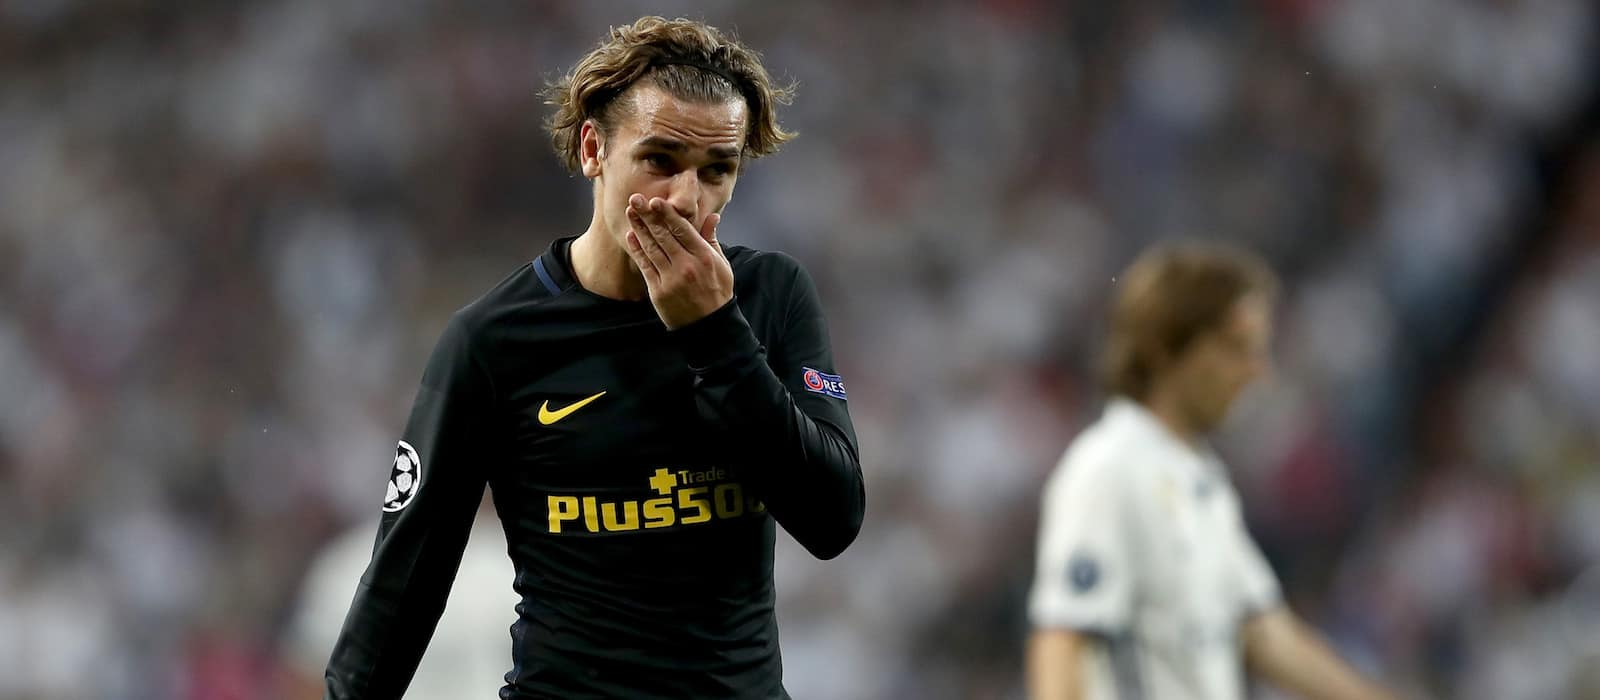 Manchester United-linked Antoine Griezmann booed off by Atletico Madrid fans